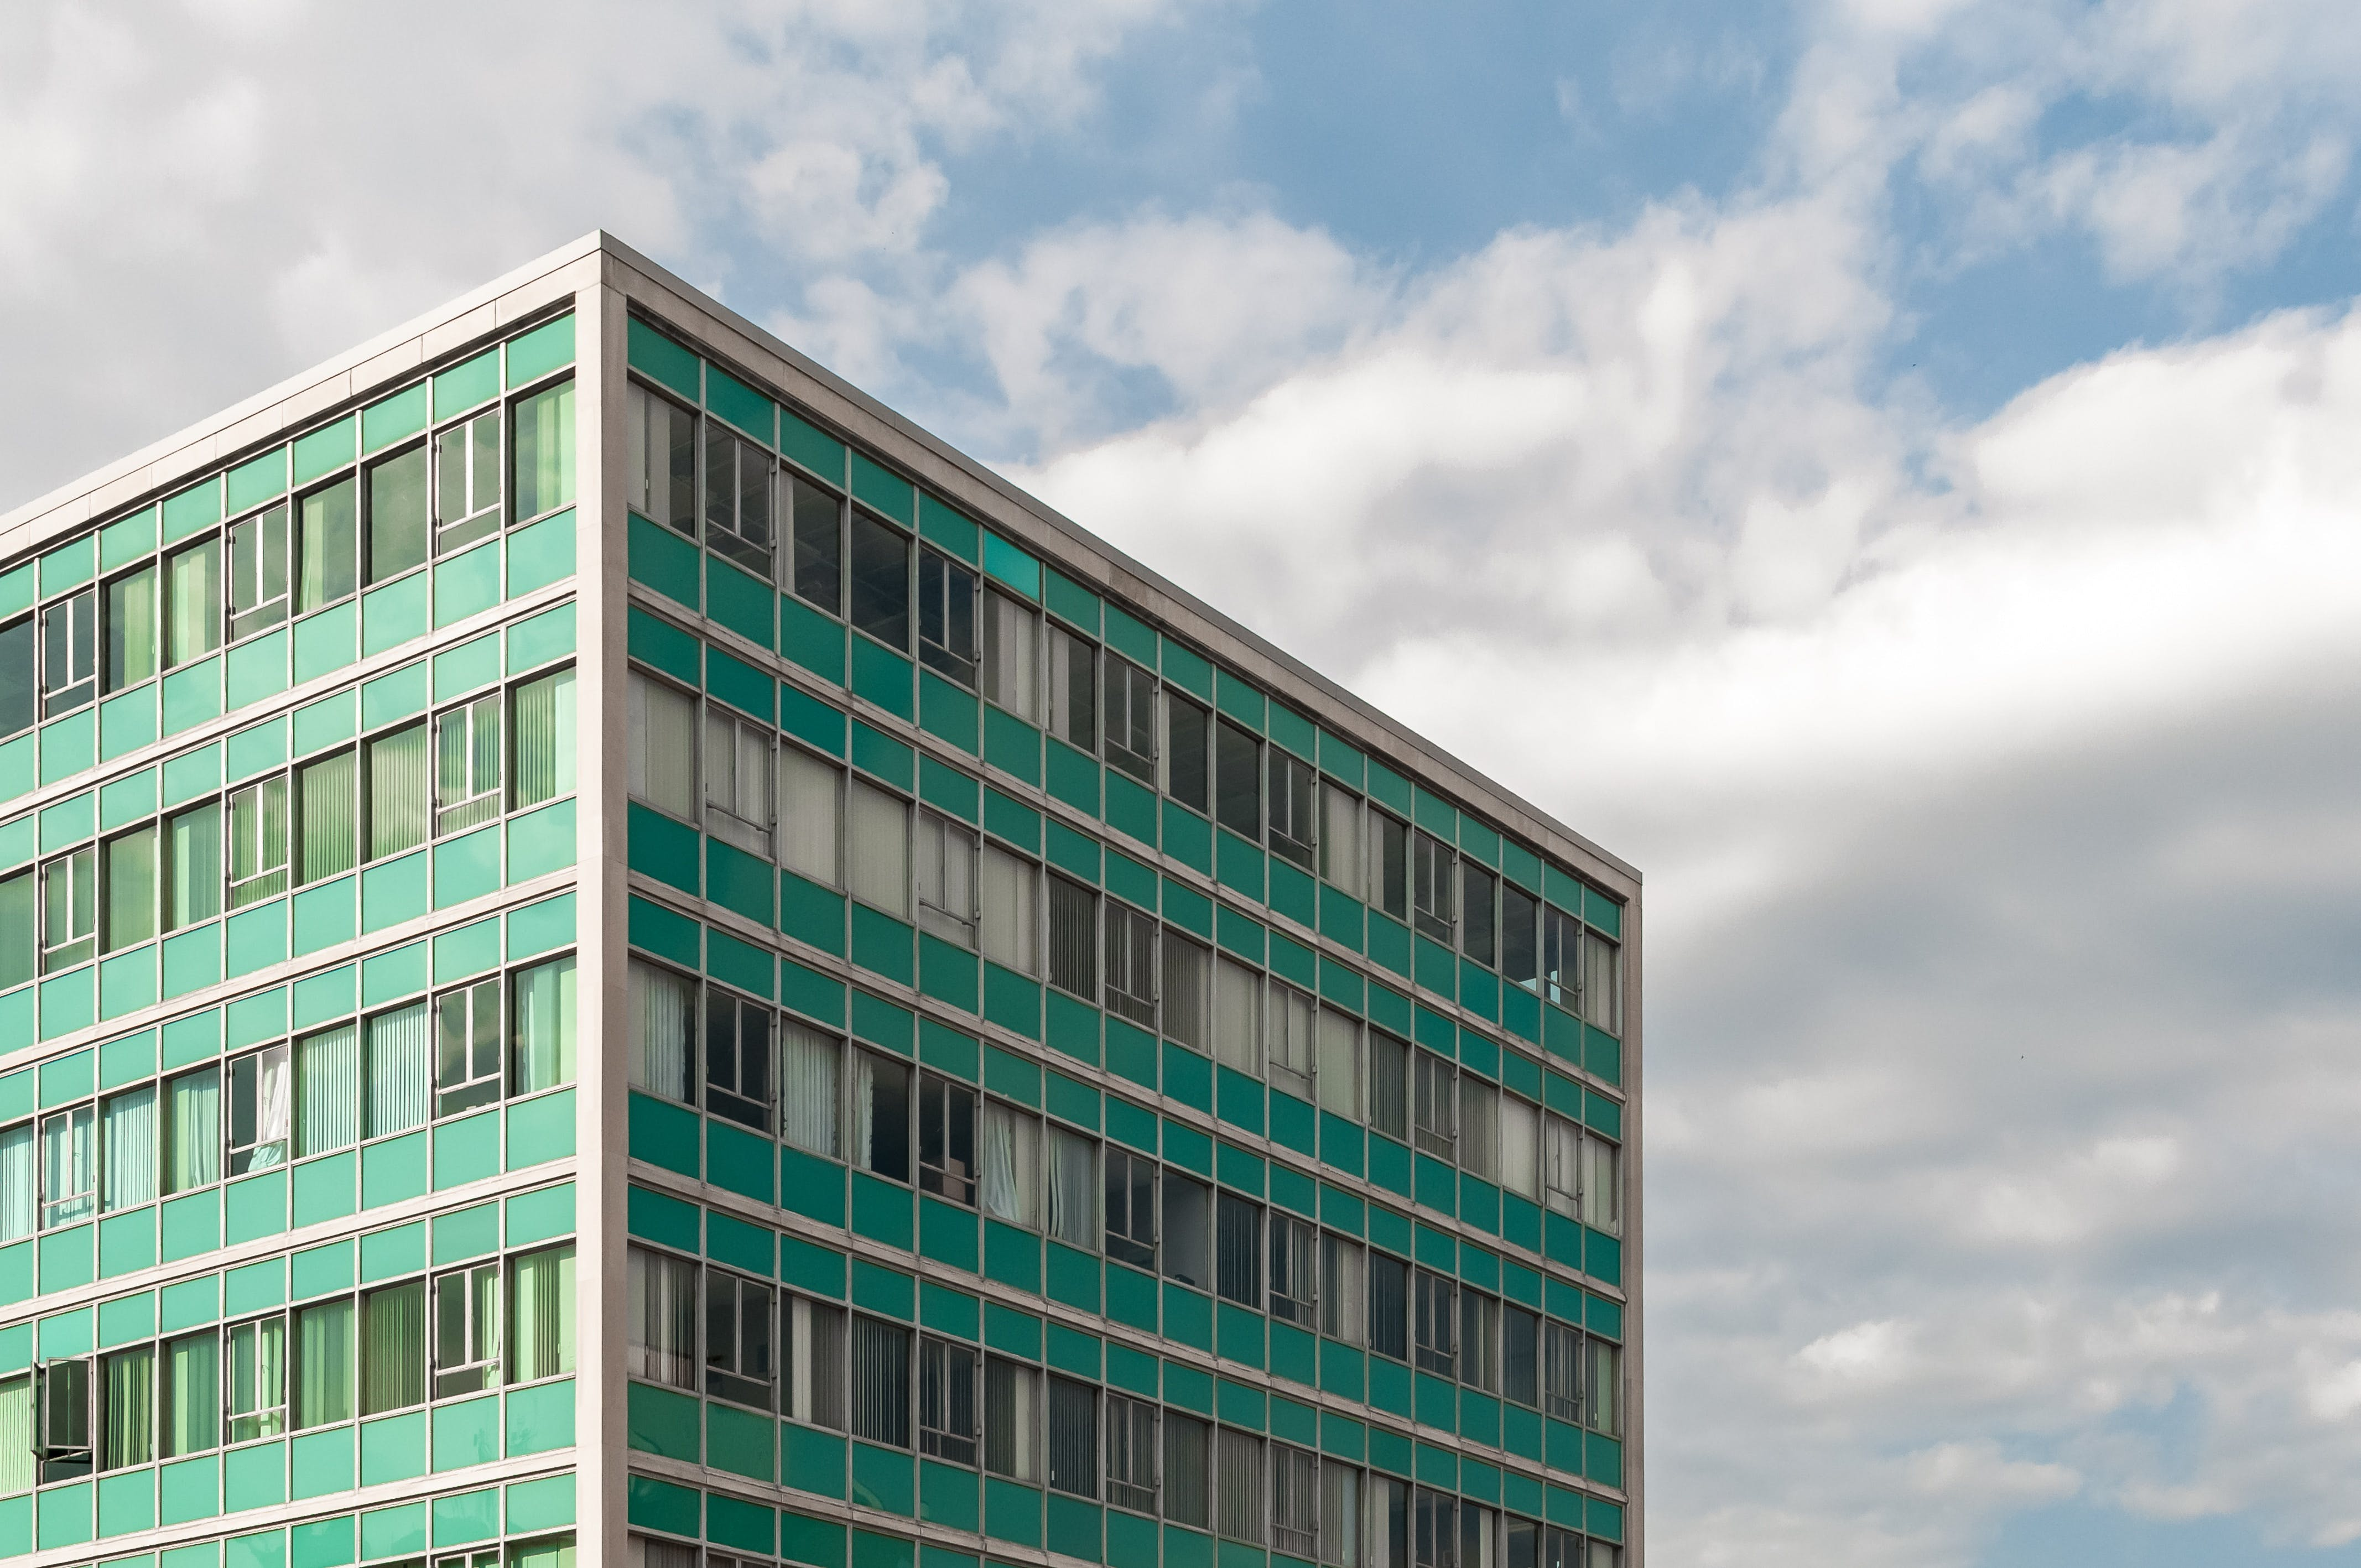 Photography of Building Under Cloudy Sky